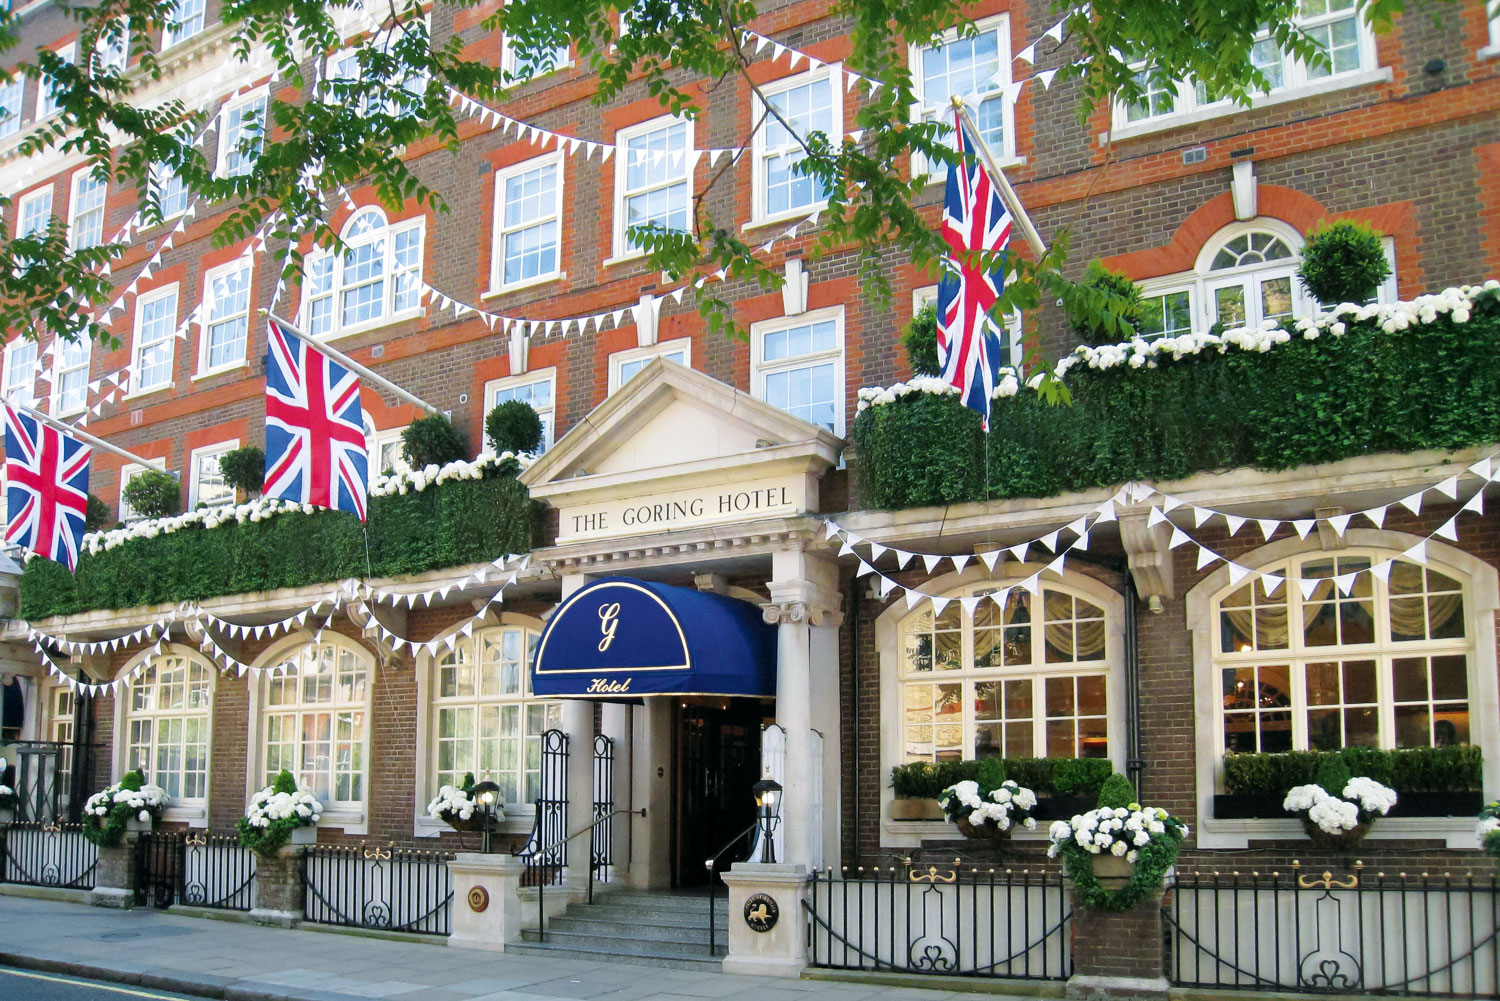 The Goring hotel, London.